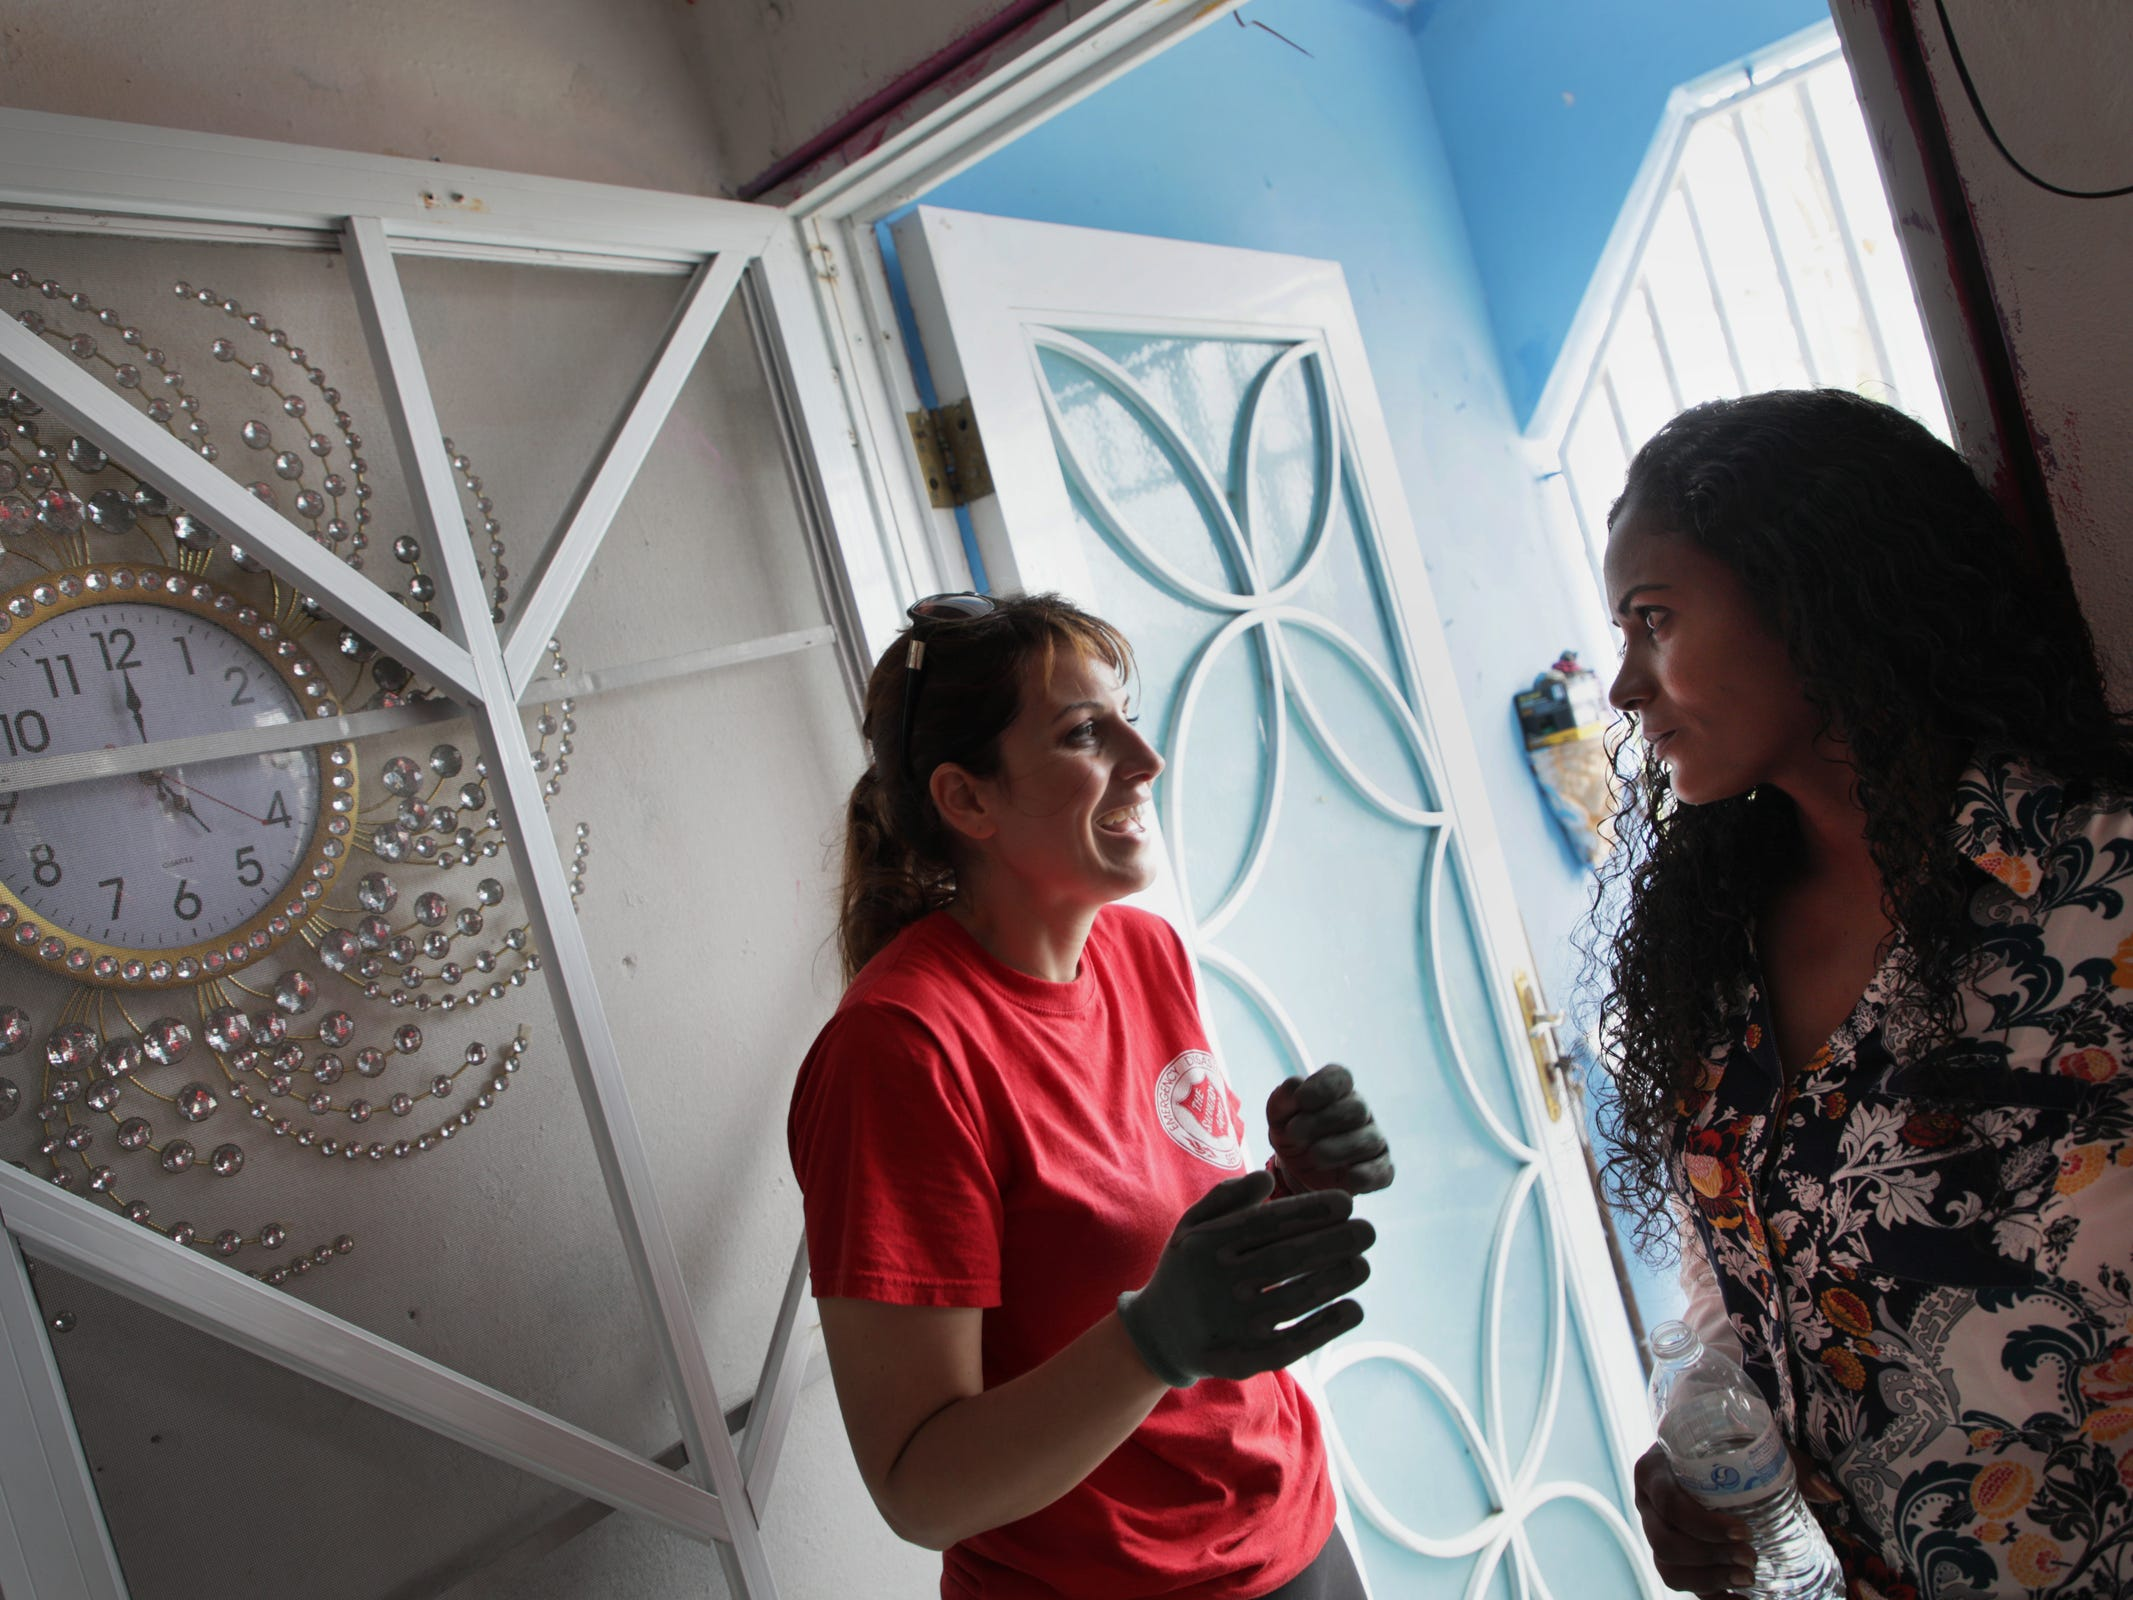 Nicky Roy, Salvation Army coordinator for long-term recovery, left and Taina Castro Cruz, 38, a former receptionist who assists the Salvation Army helping others talk during a home visit in Yabucoa, Puerto Rico.